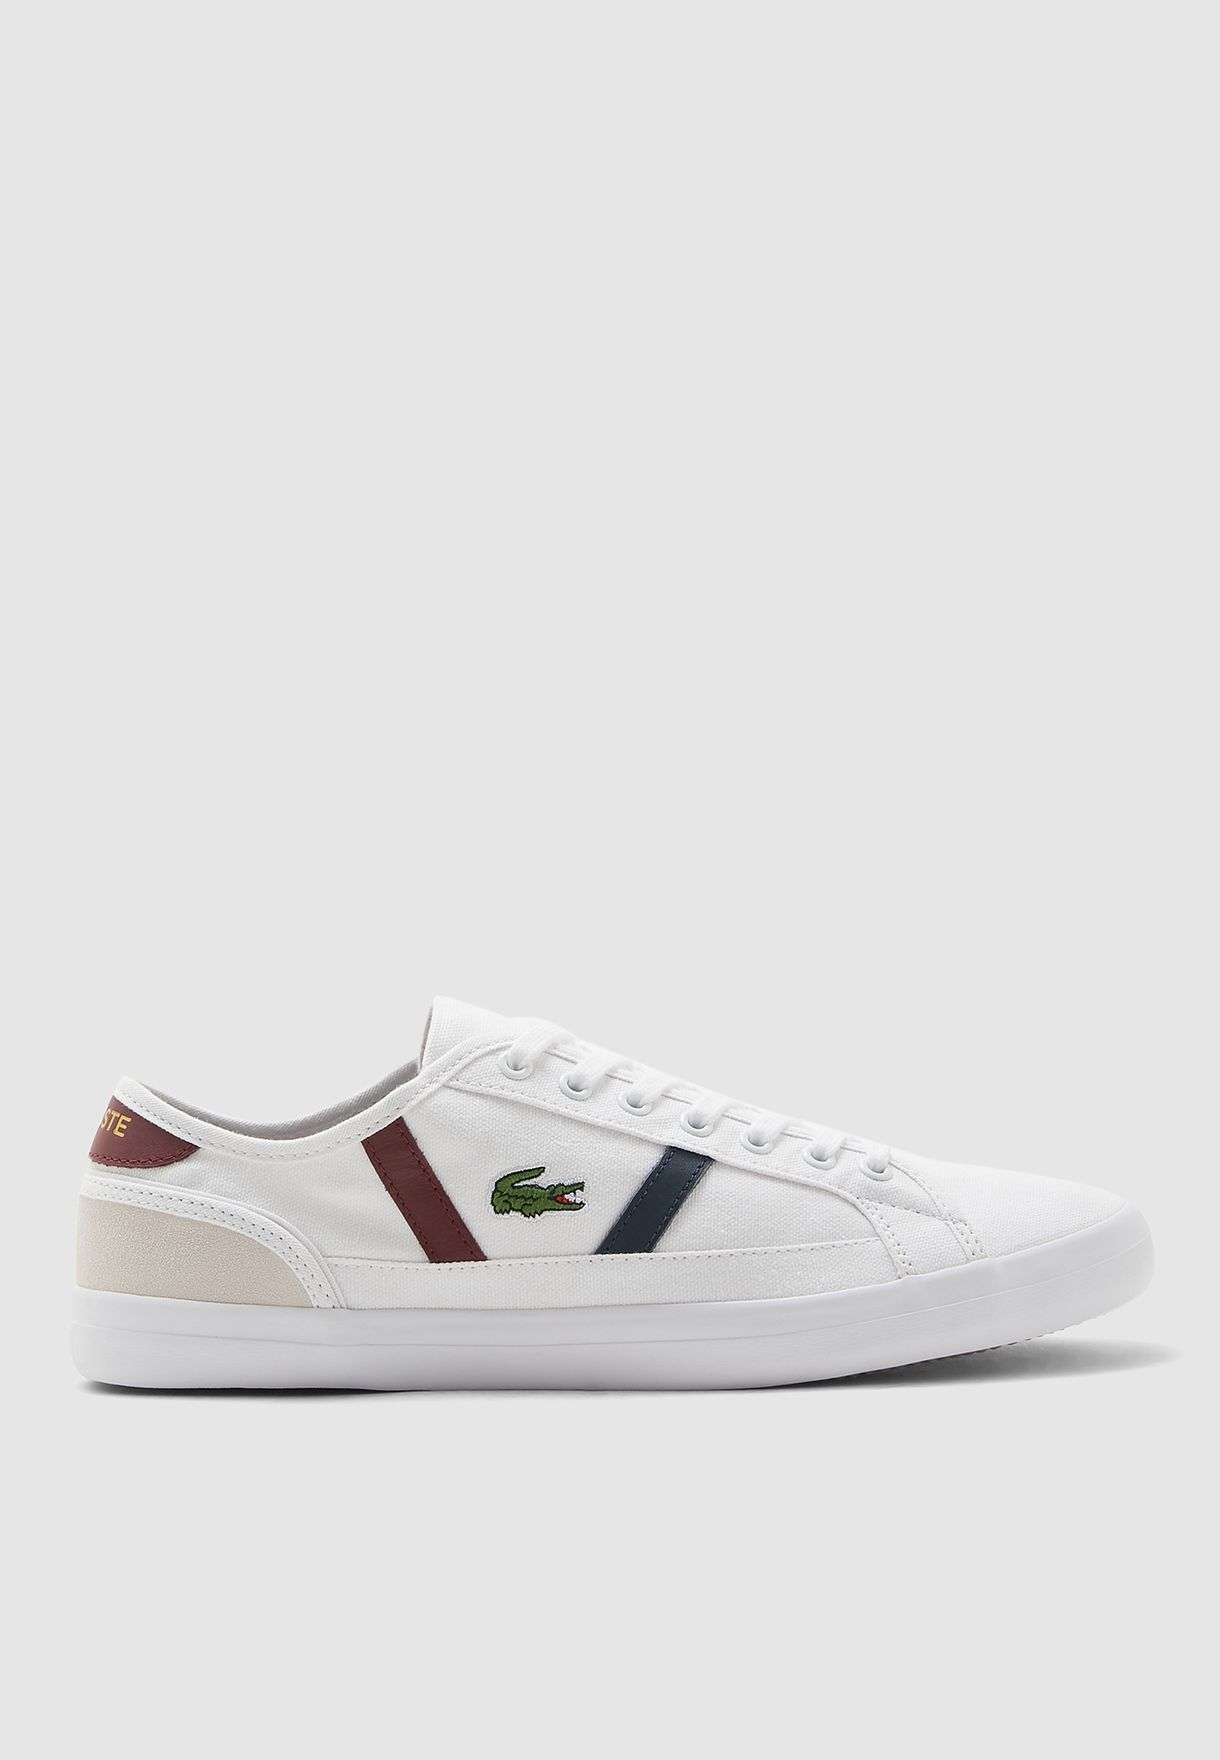 Lacoste White Sideline Sneakers For